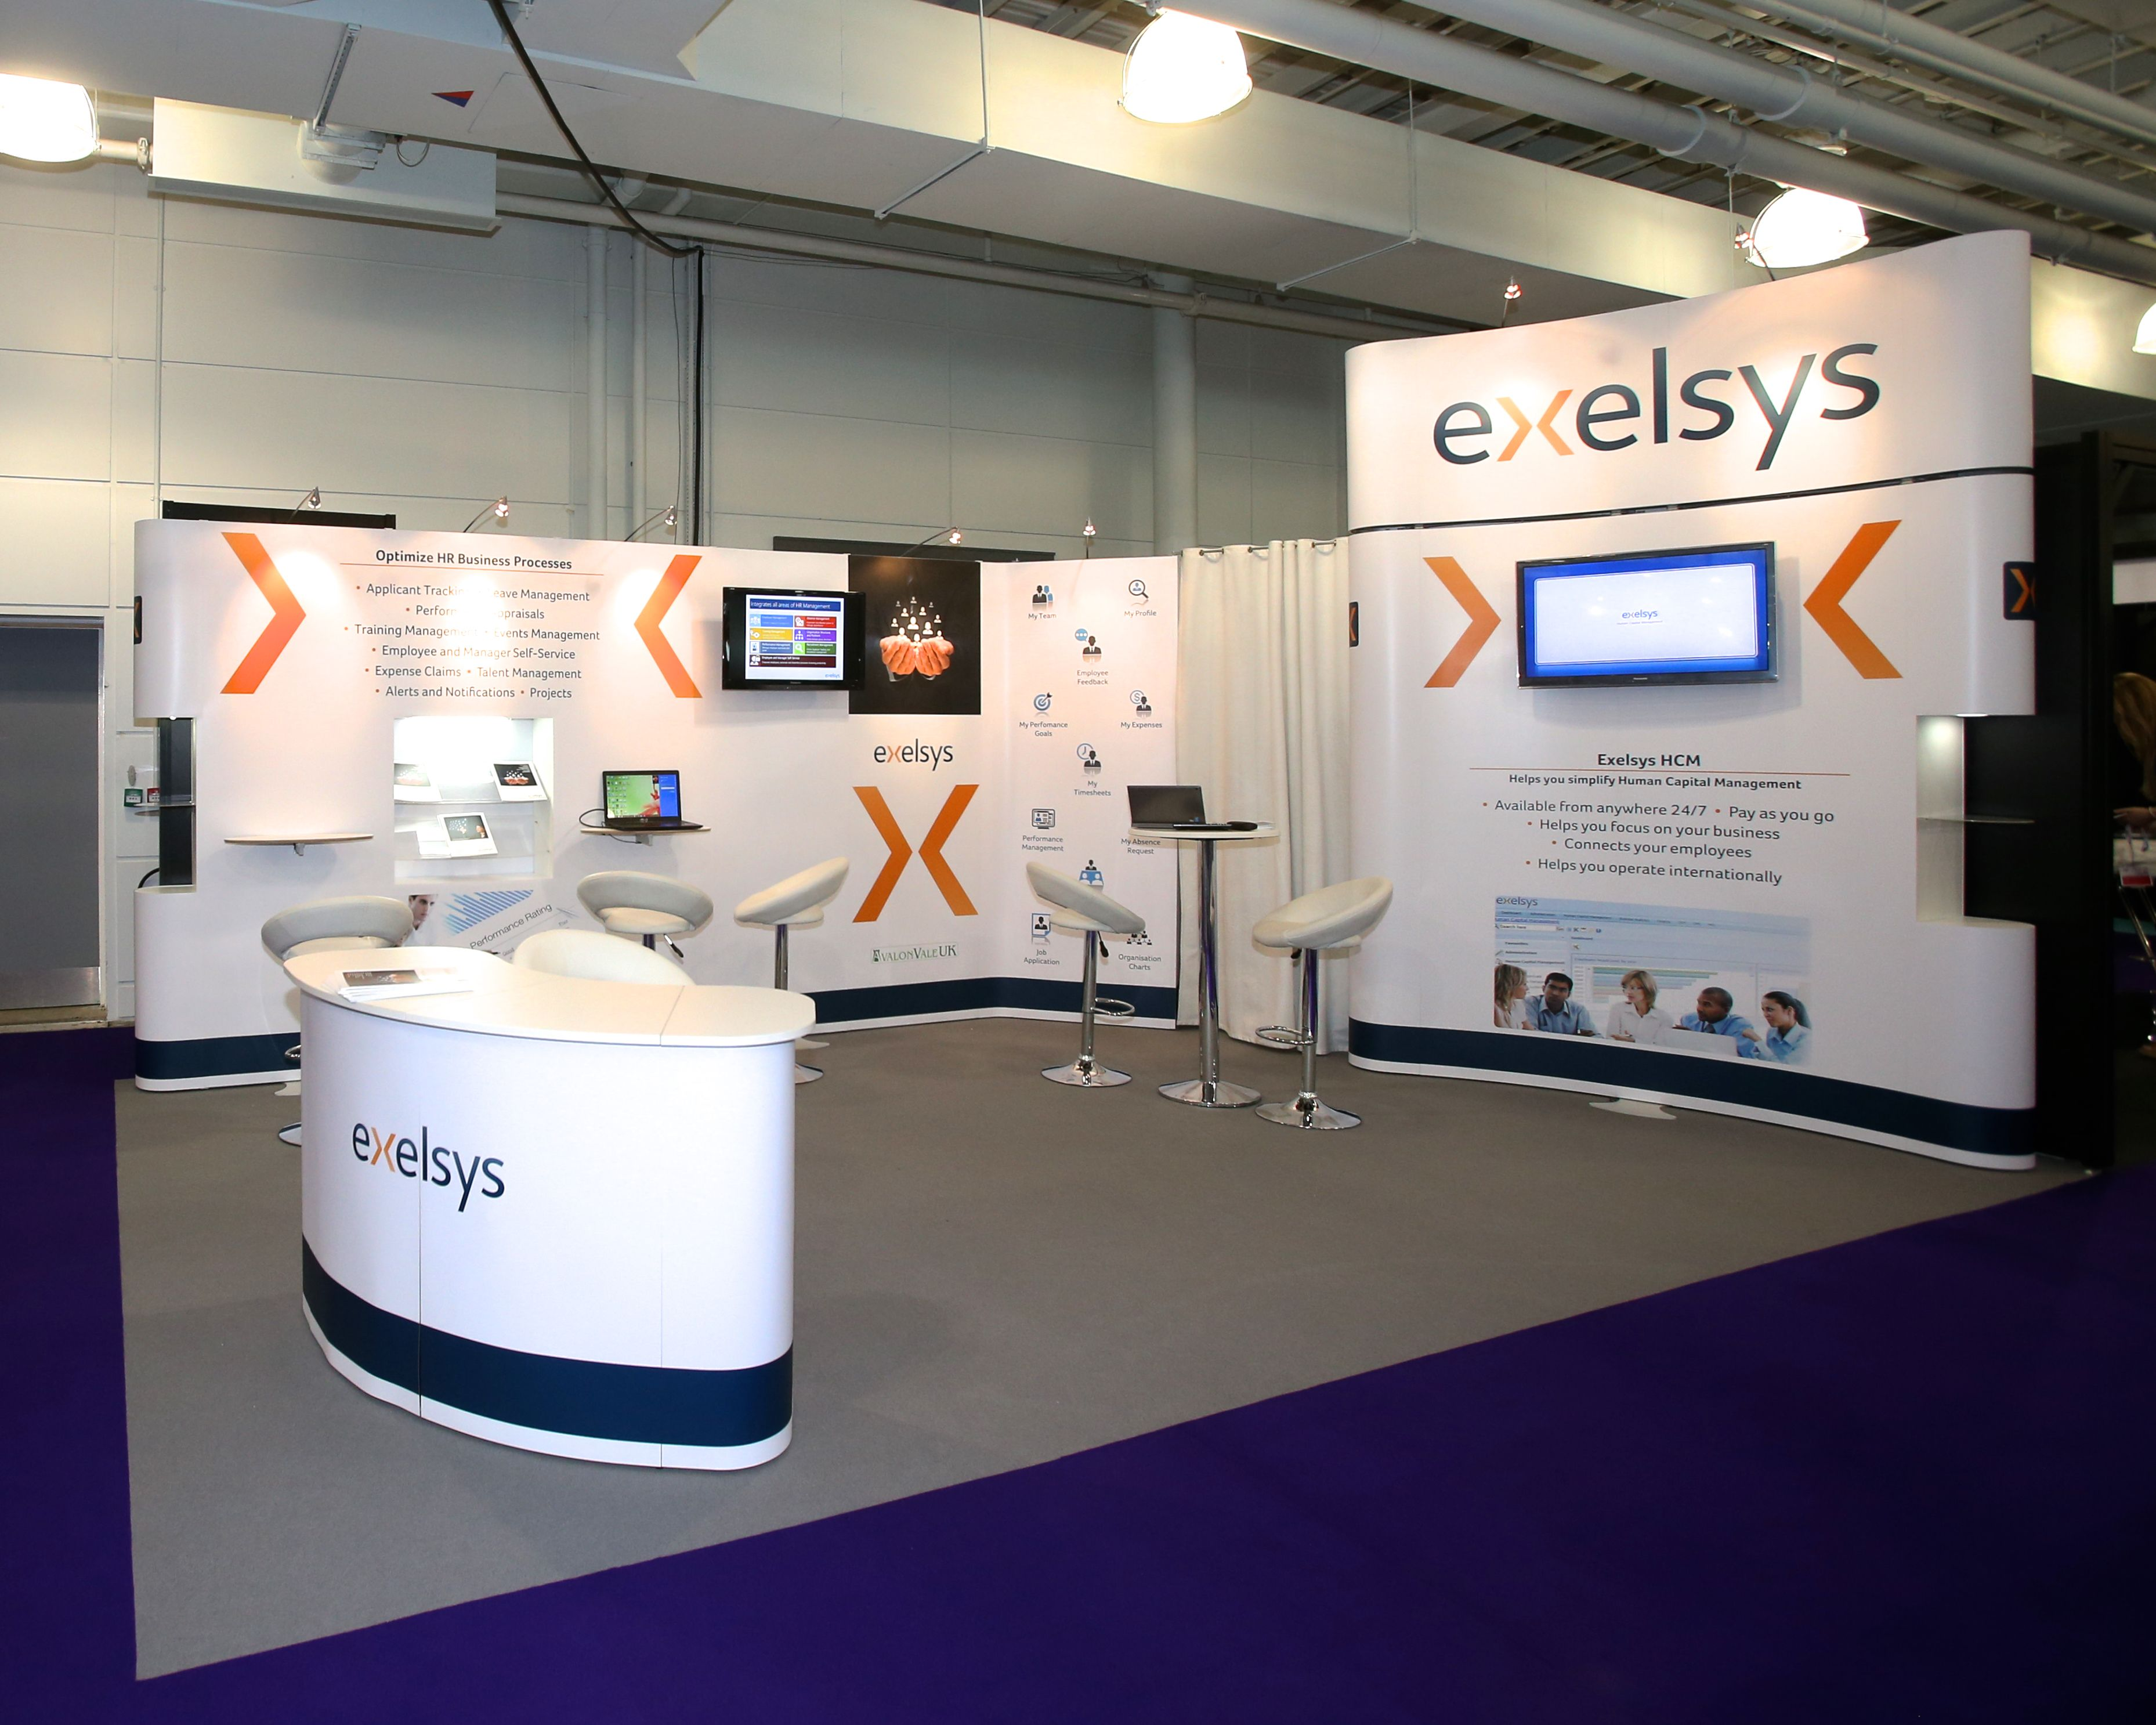 Modular Exhibition Stands Out : Modular exhibition stand for exelsys by quadrant design at